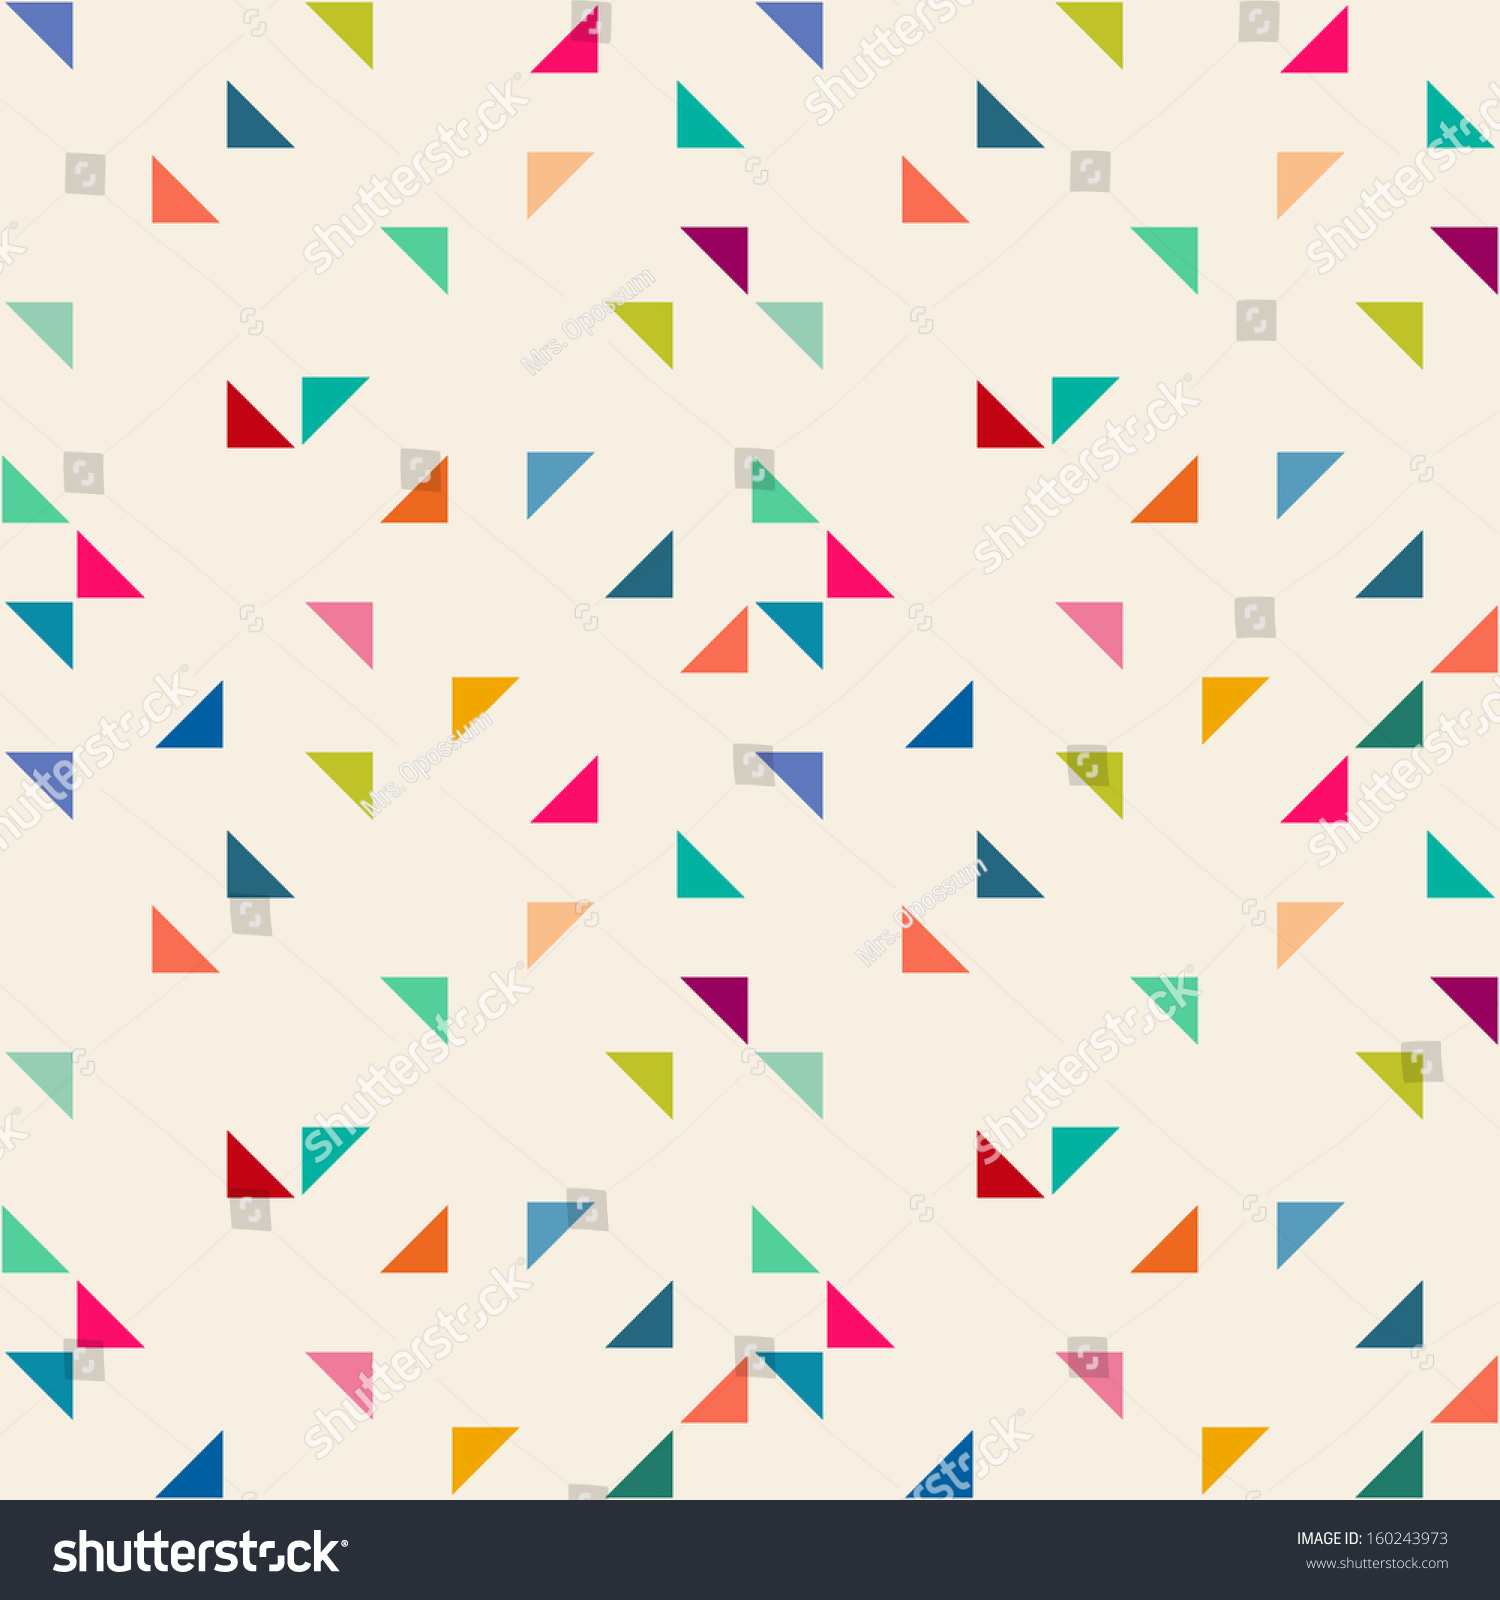 Edit Vectors Free Online Seamless Geometric